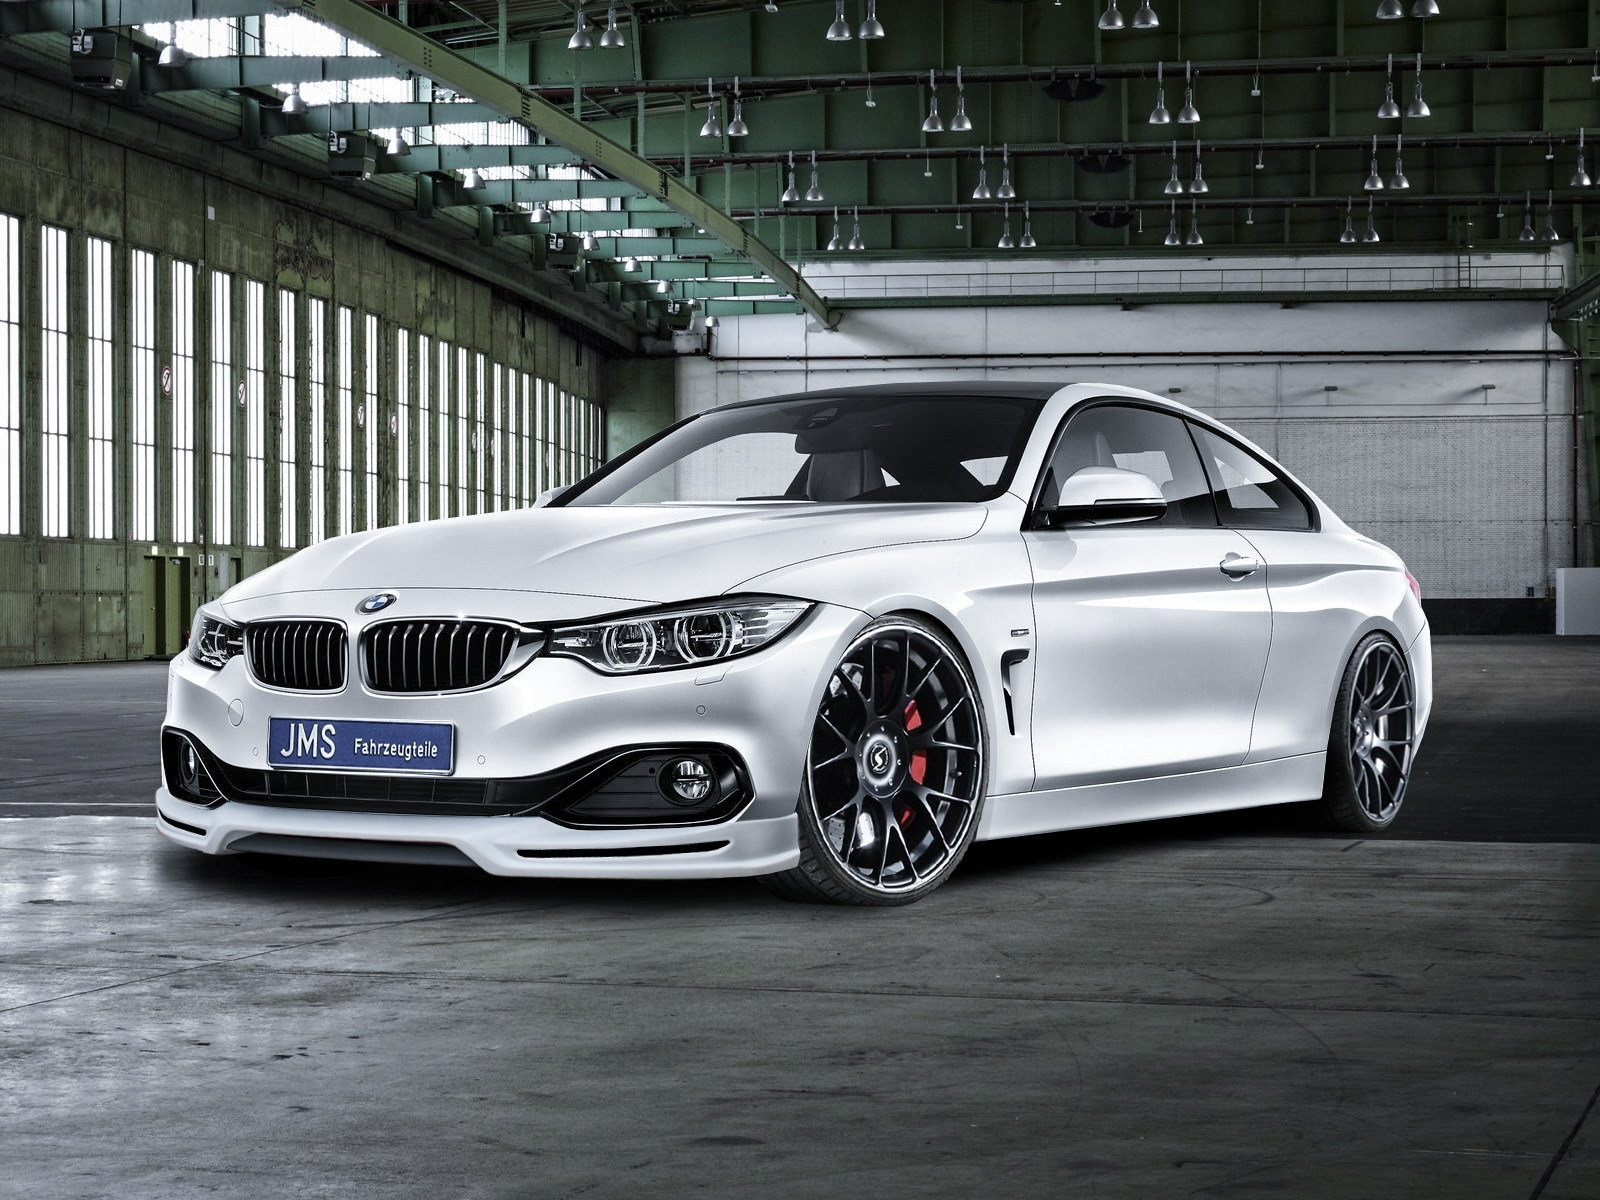 2014 bmw 4 series coupe by jms picture 525397 car review top speed. Black Bedroom Furniture Sets. Home Design Ideas